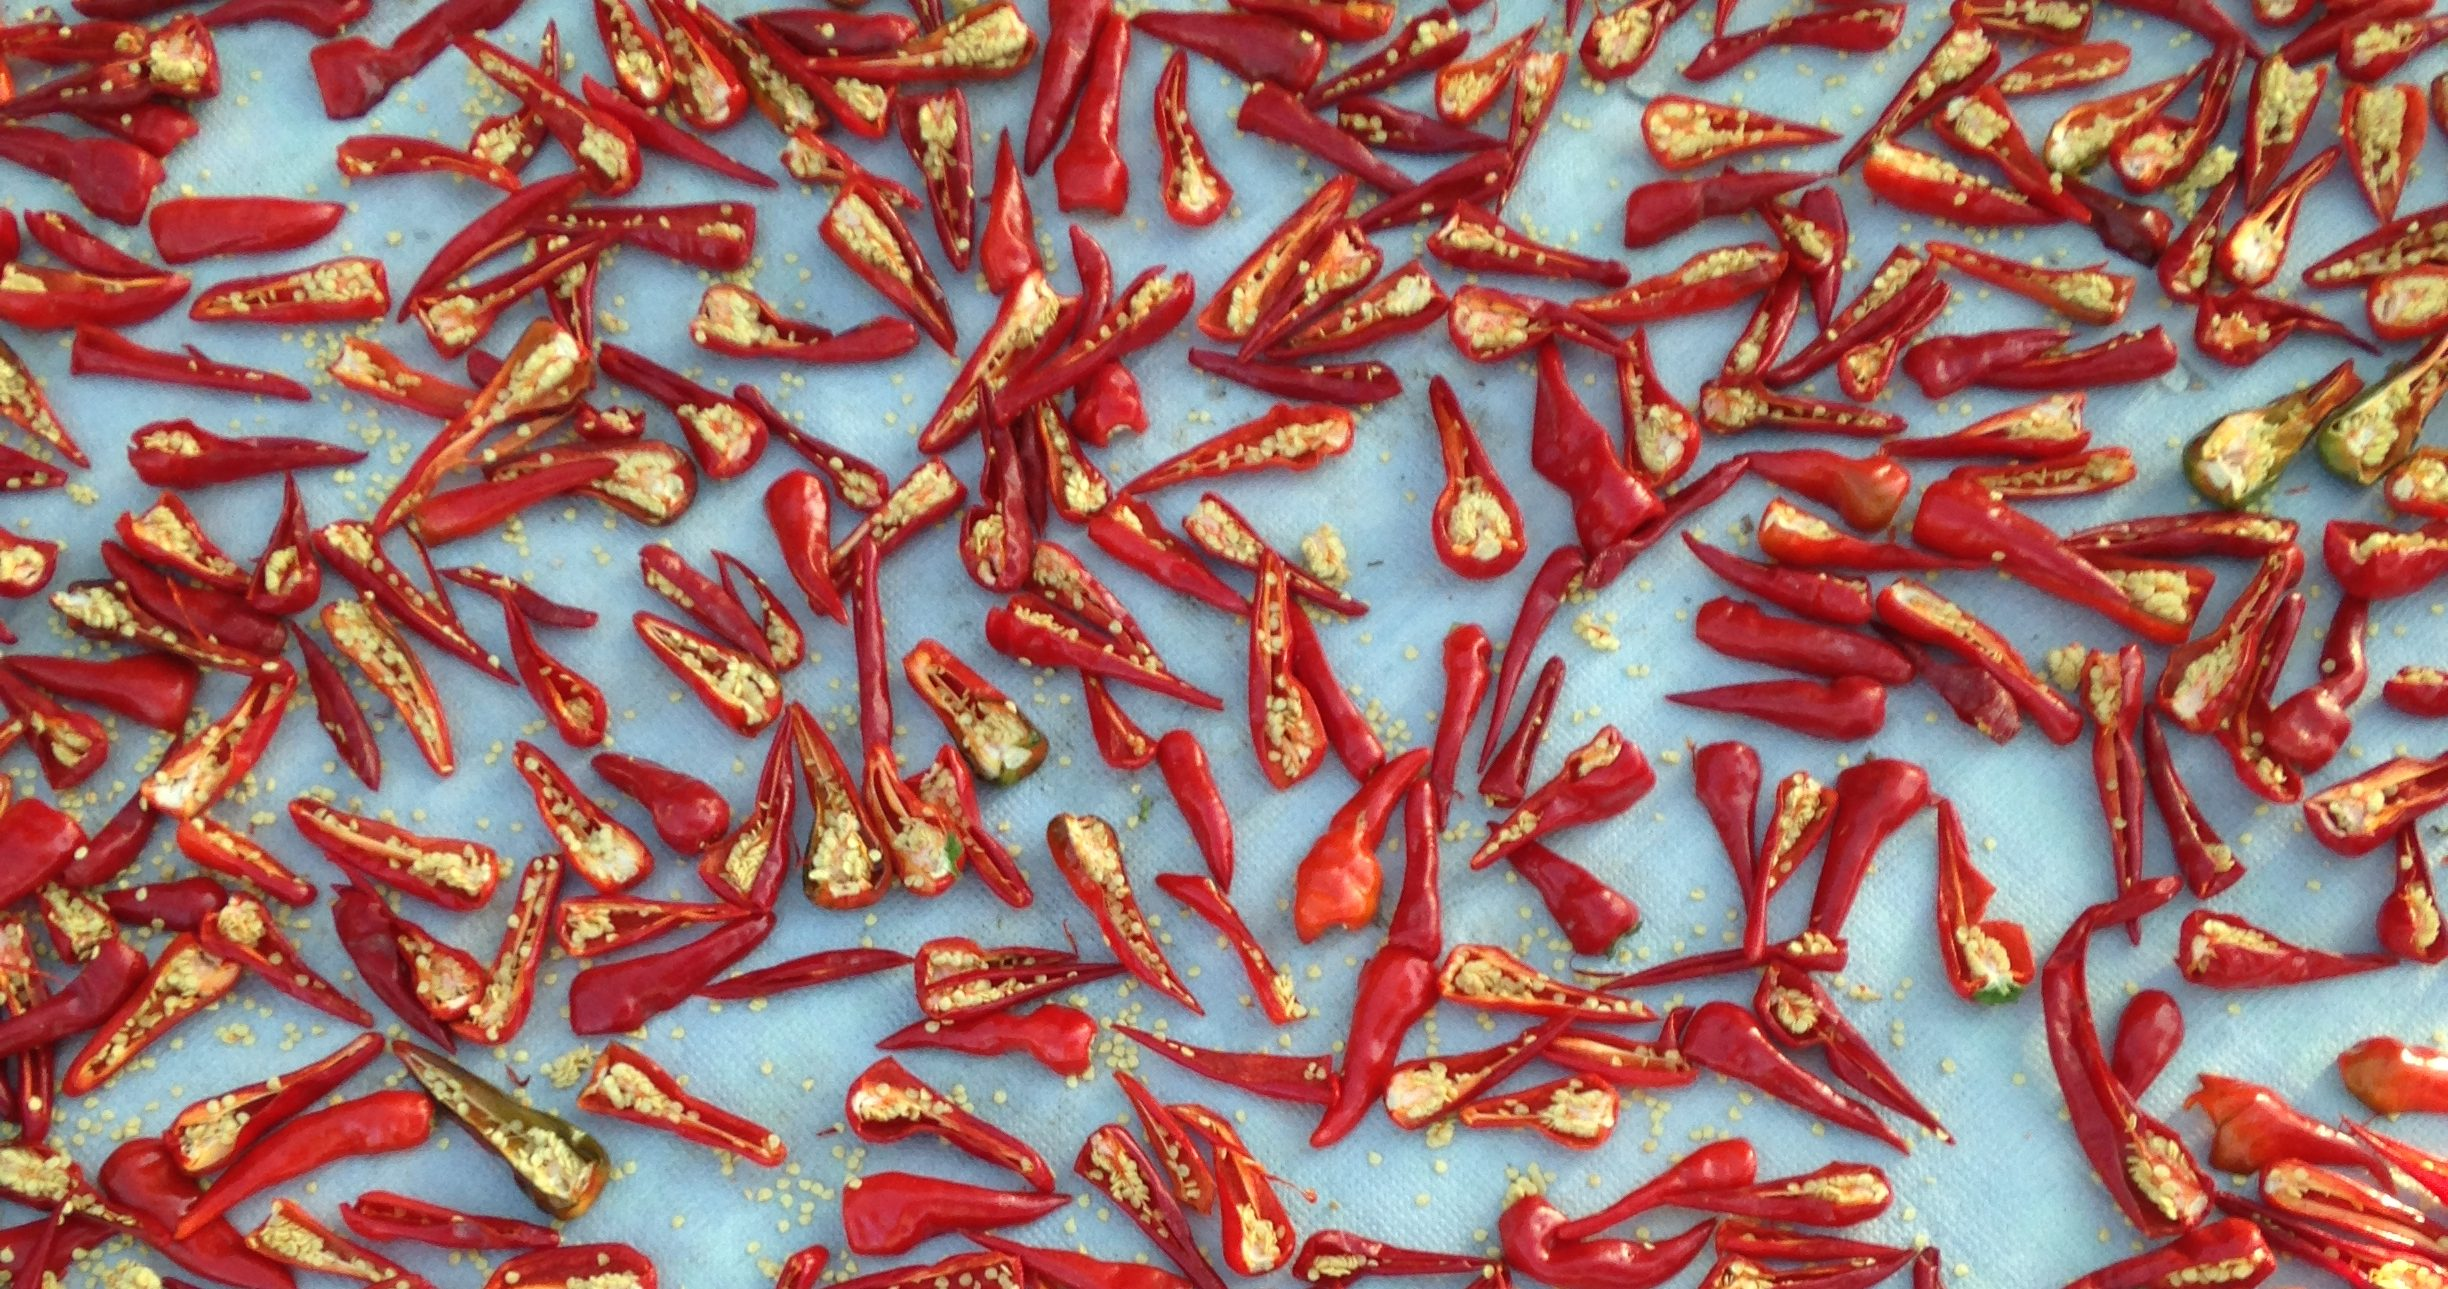 chilip peppers drying on a sheet